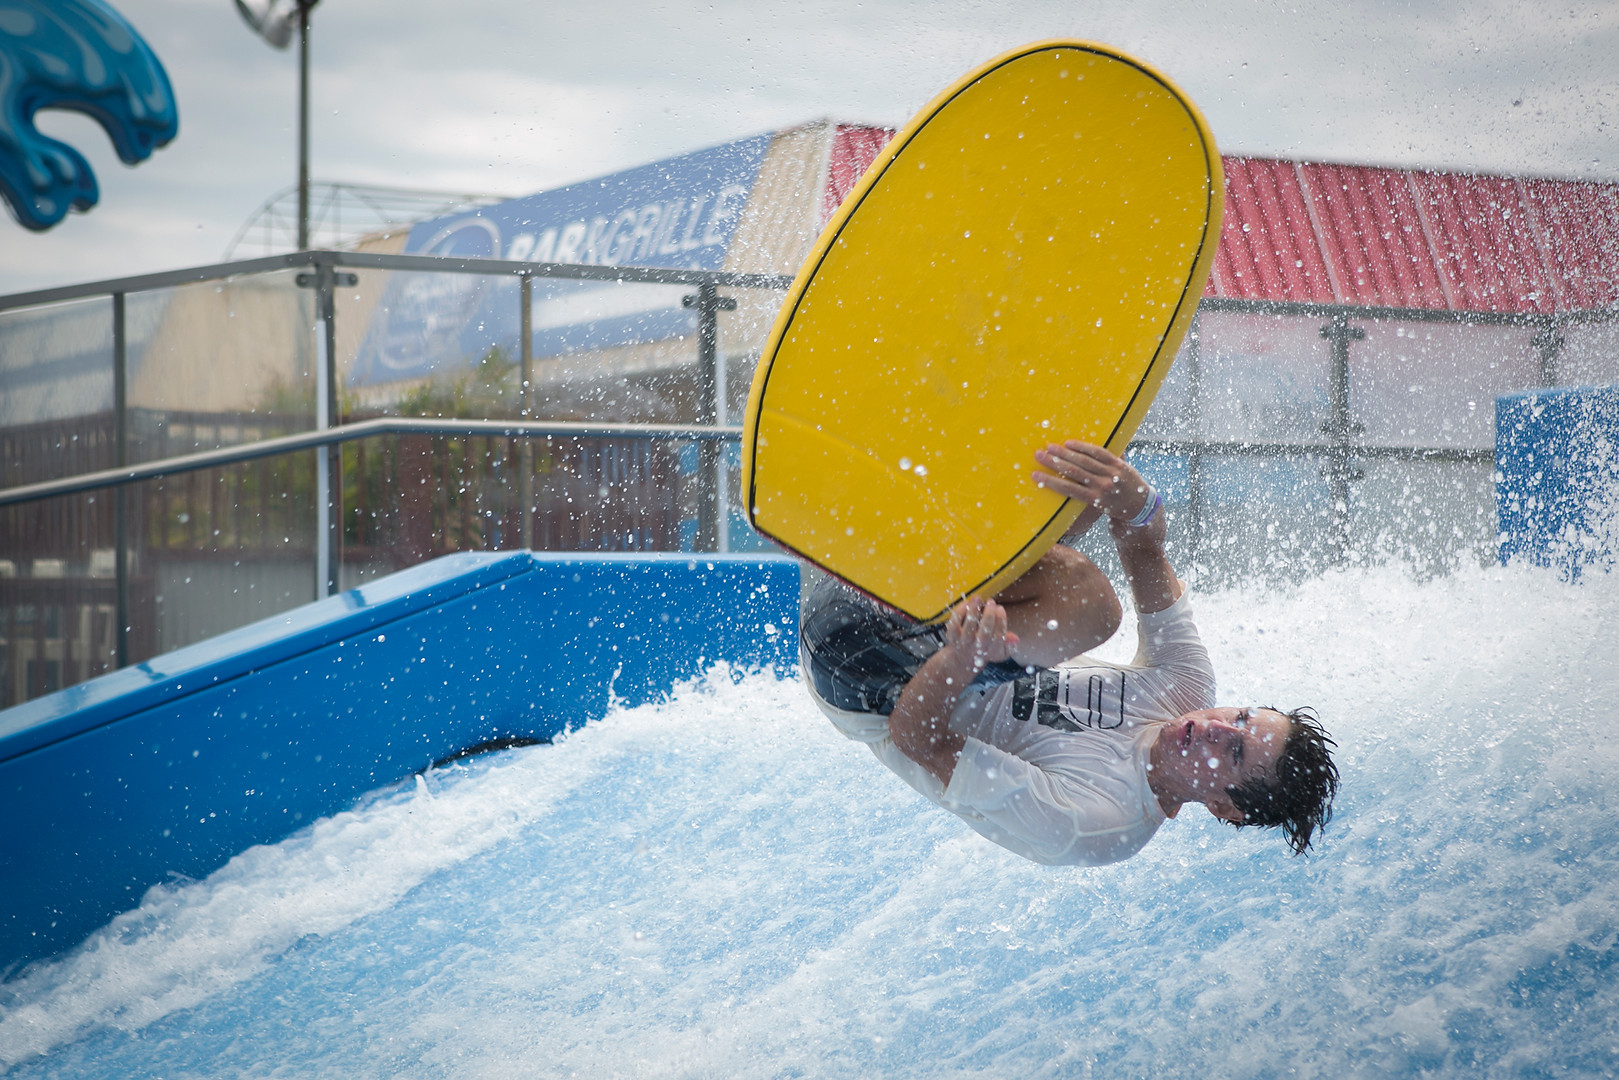 Daniel Tepper, a 19-year-old from Cape May Court House, N.J., flowboards at Splash Zone Waterpark in Wildwood, N.J., on the morning of Thursday, July 12, 2018.  Maggie Loesch / The Philadelphia Inquirer